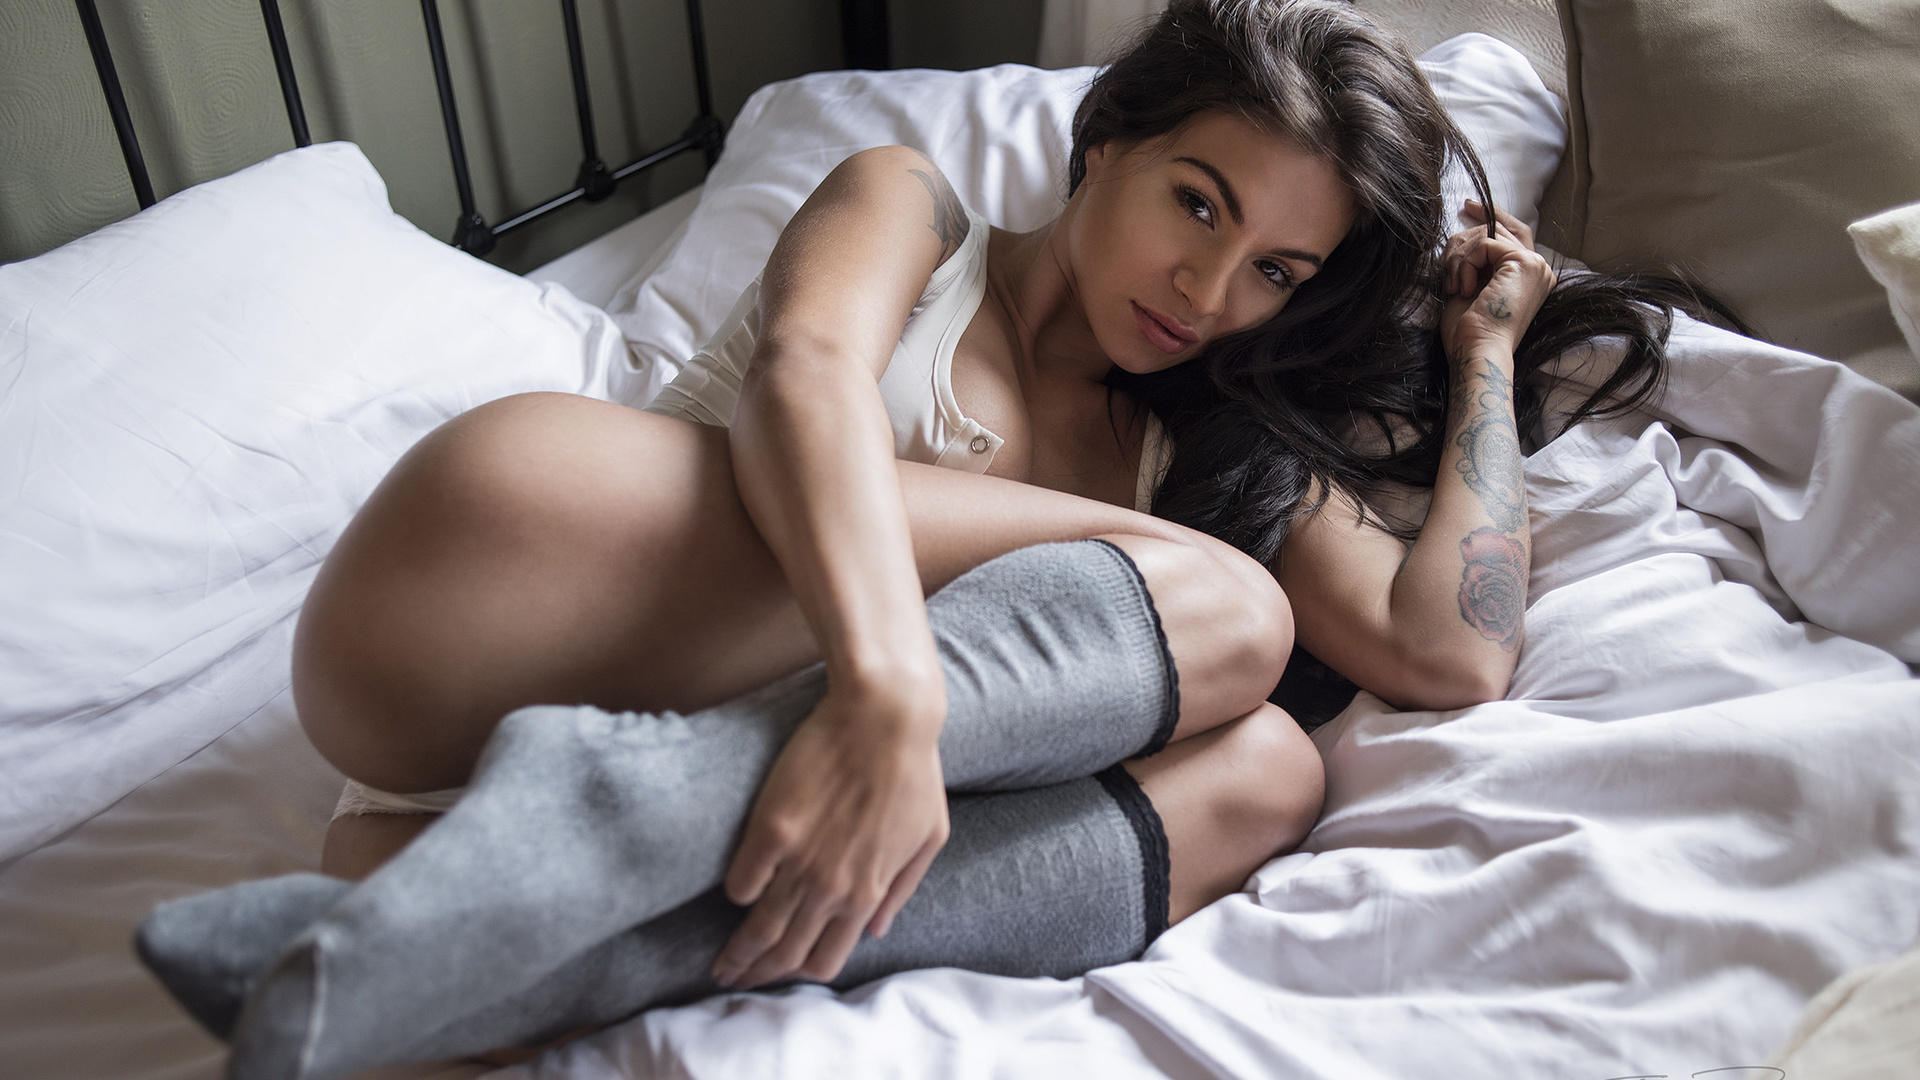 women, jack russell, in bed, ass, stockings, tanned, pillow, white panties, portrait, tattoo